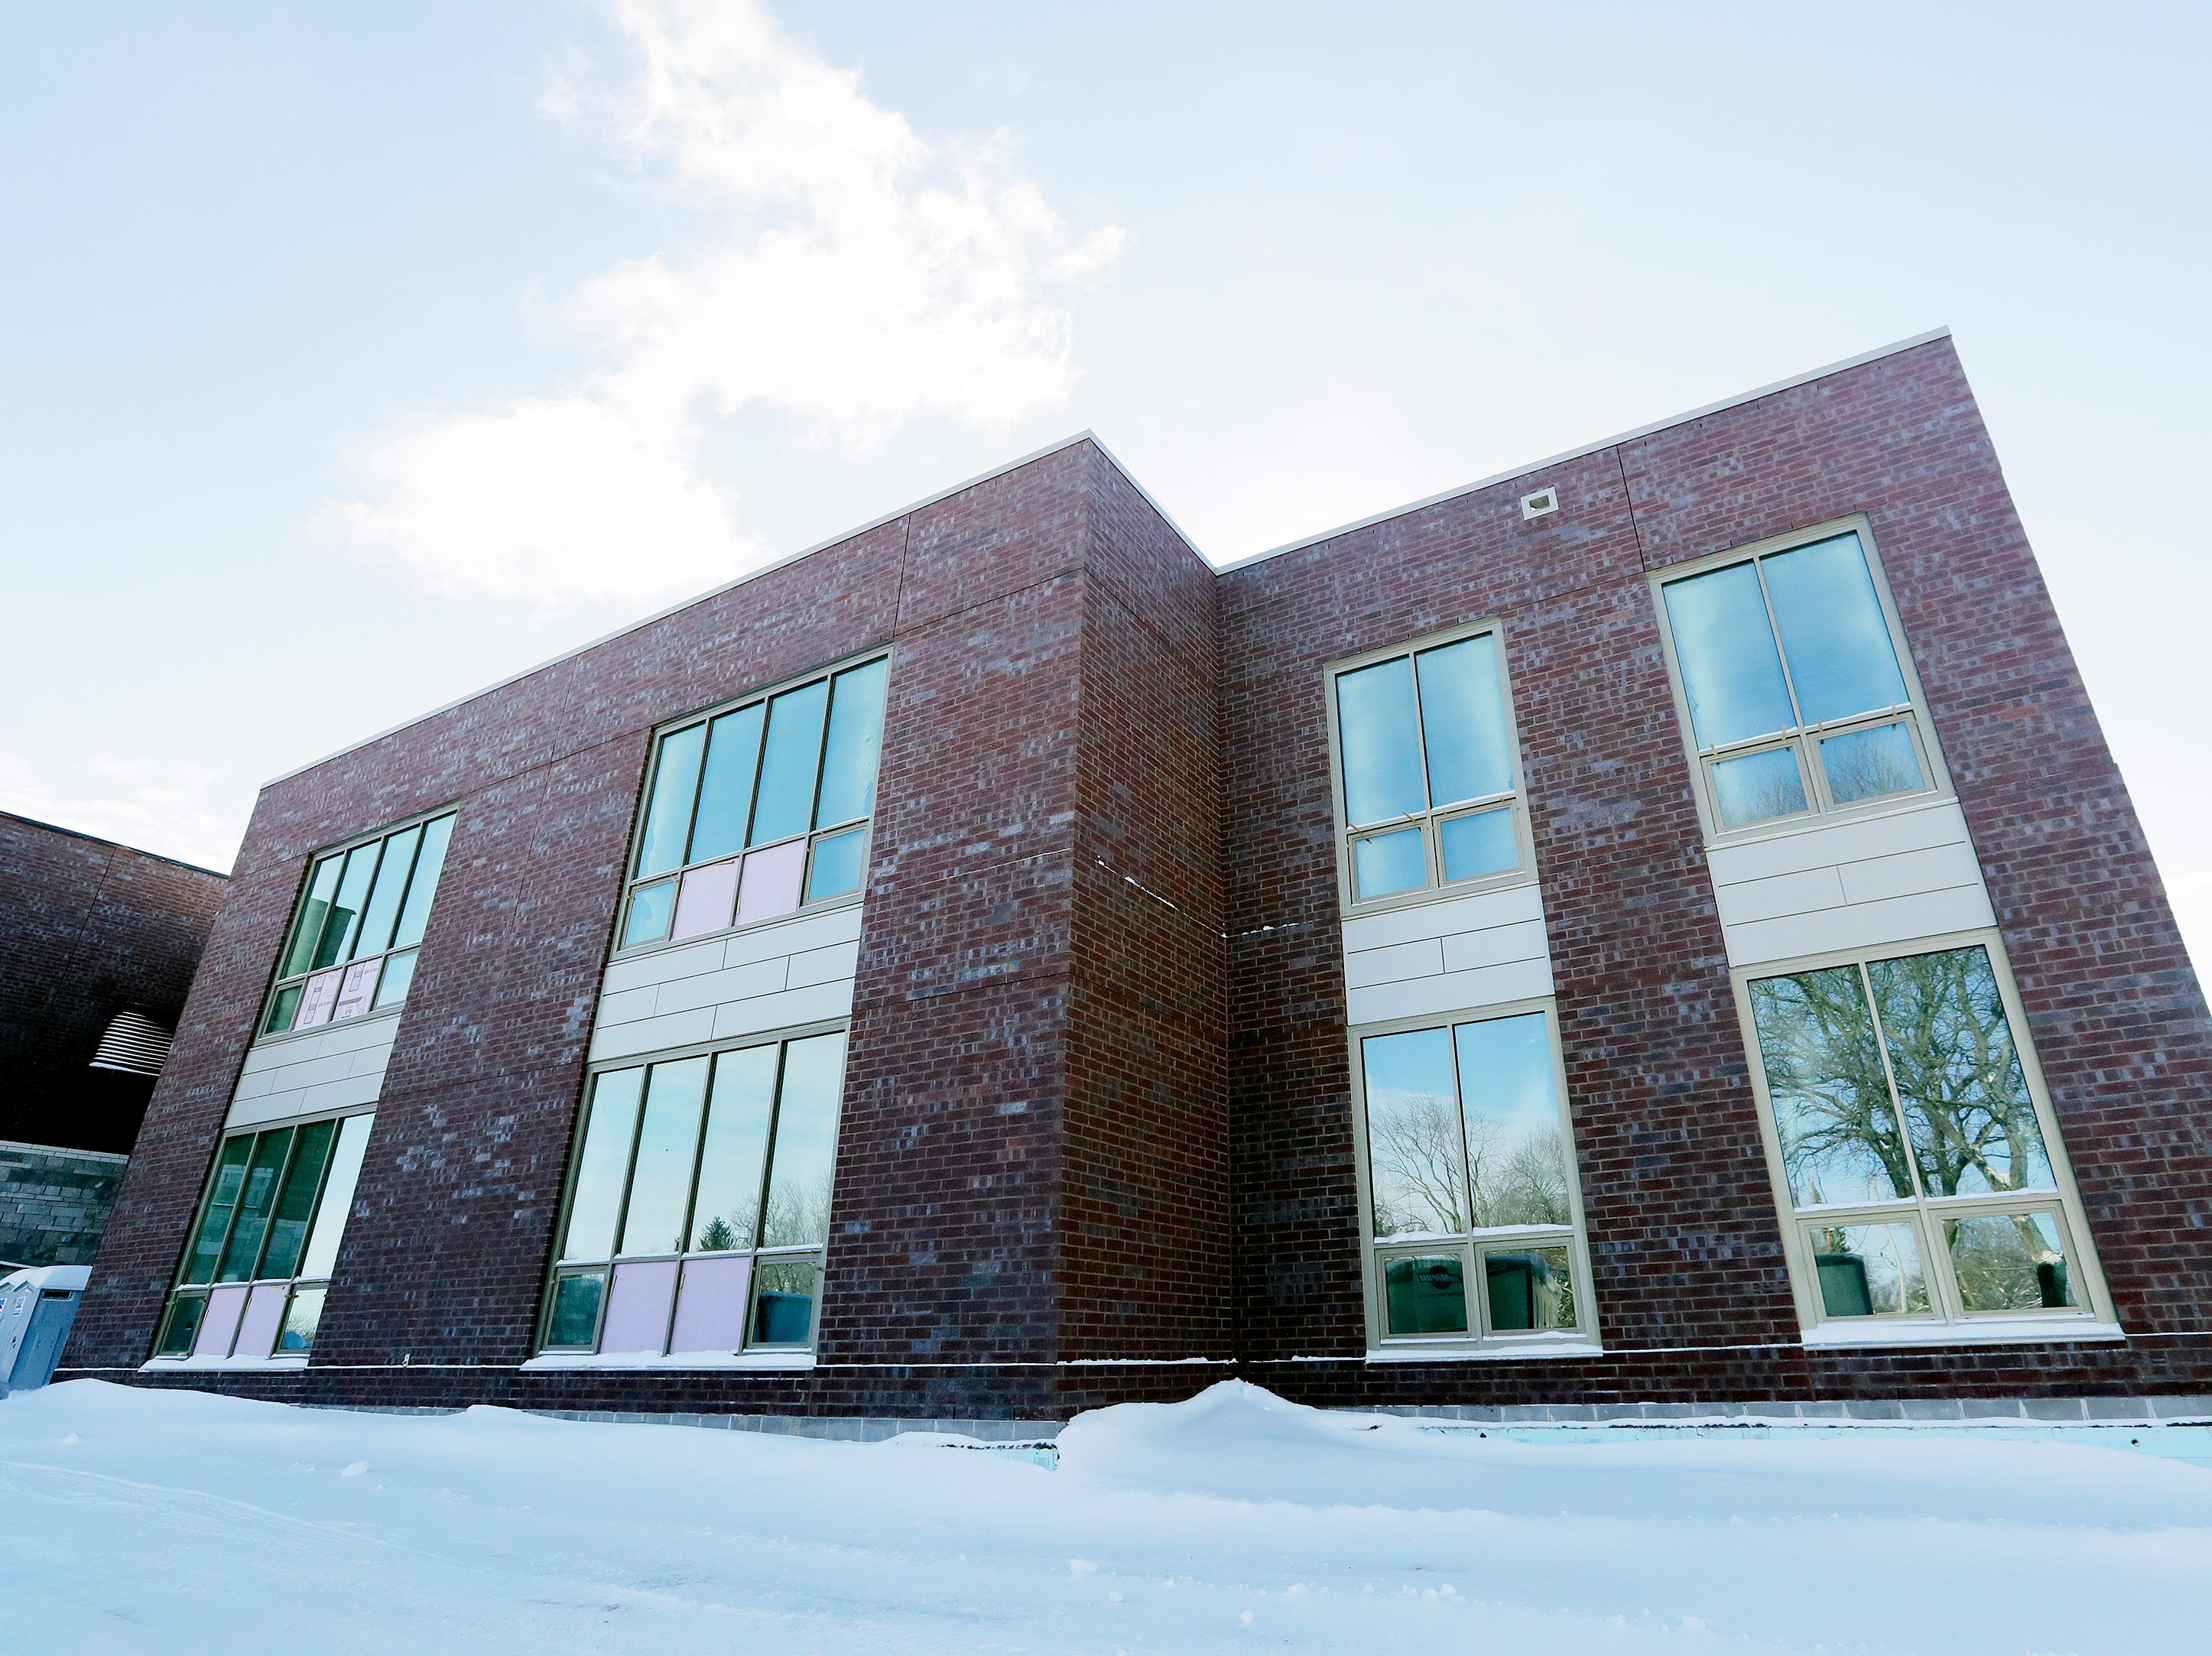 Windows have been installed on part of the new Baird Elementary School in Green Bay. The new school is scheduled to open in fall.